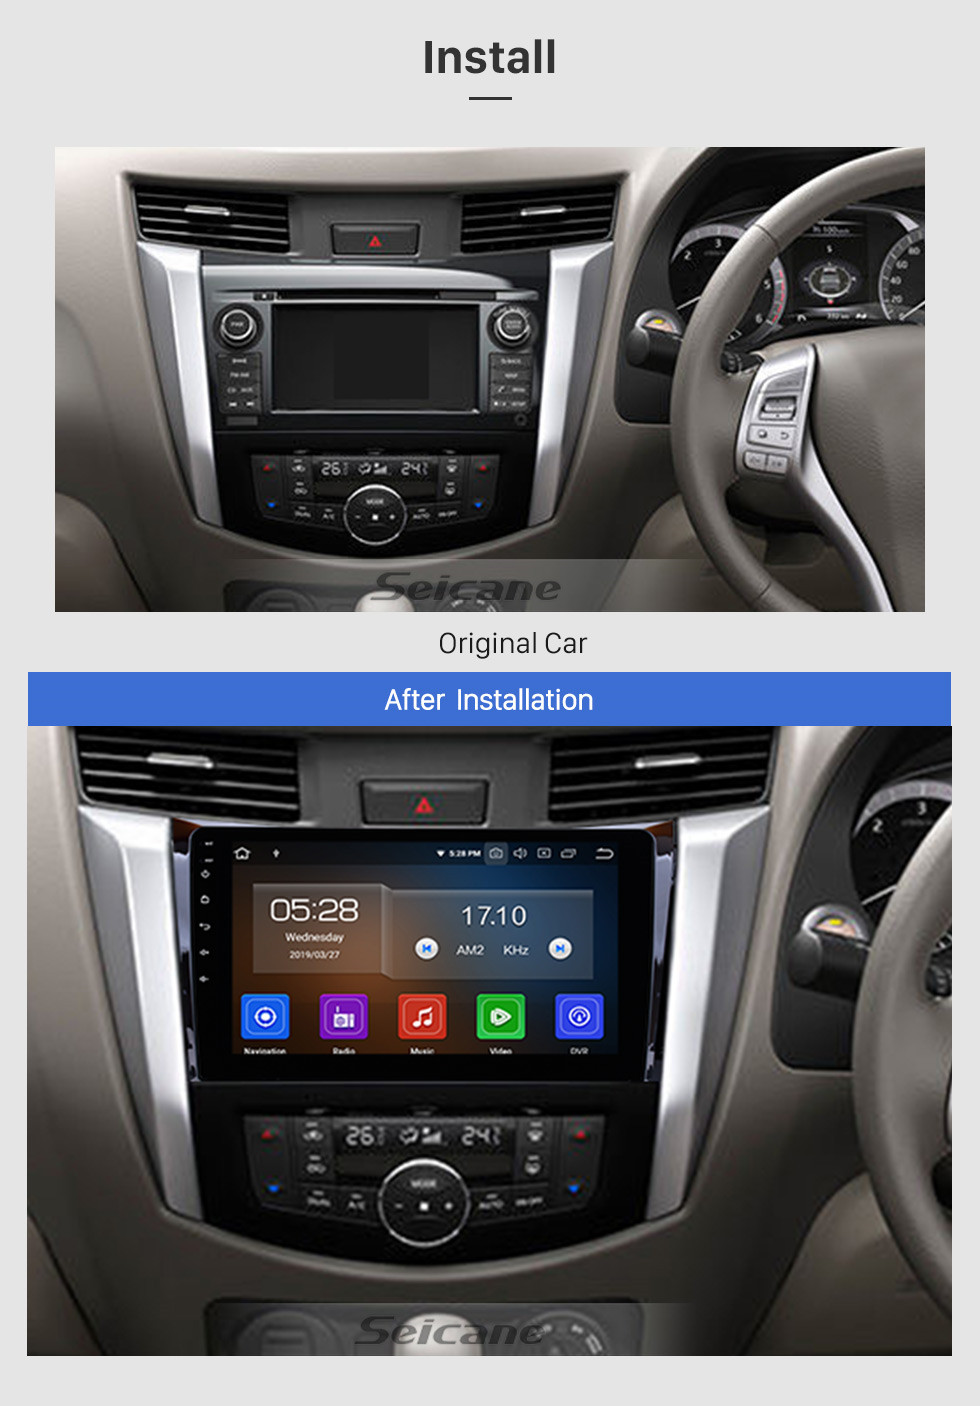 Seicane Android 9.0 2011-2016 NISSAN navara Radio GPS navigation system touchscreen head unit WIFI Bluetooth Rearview Camera